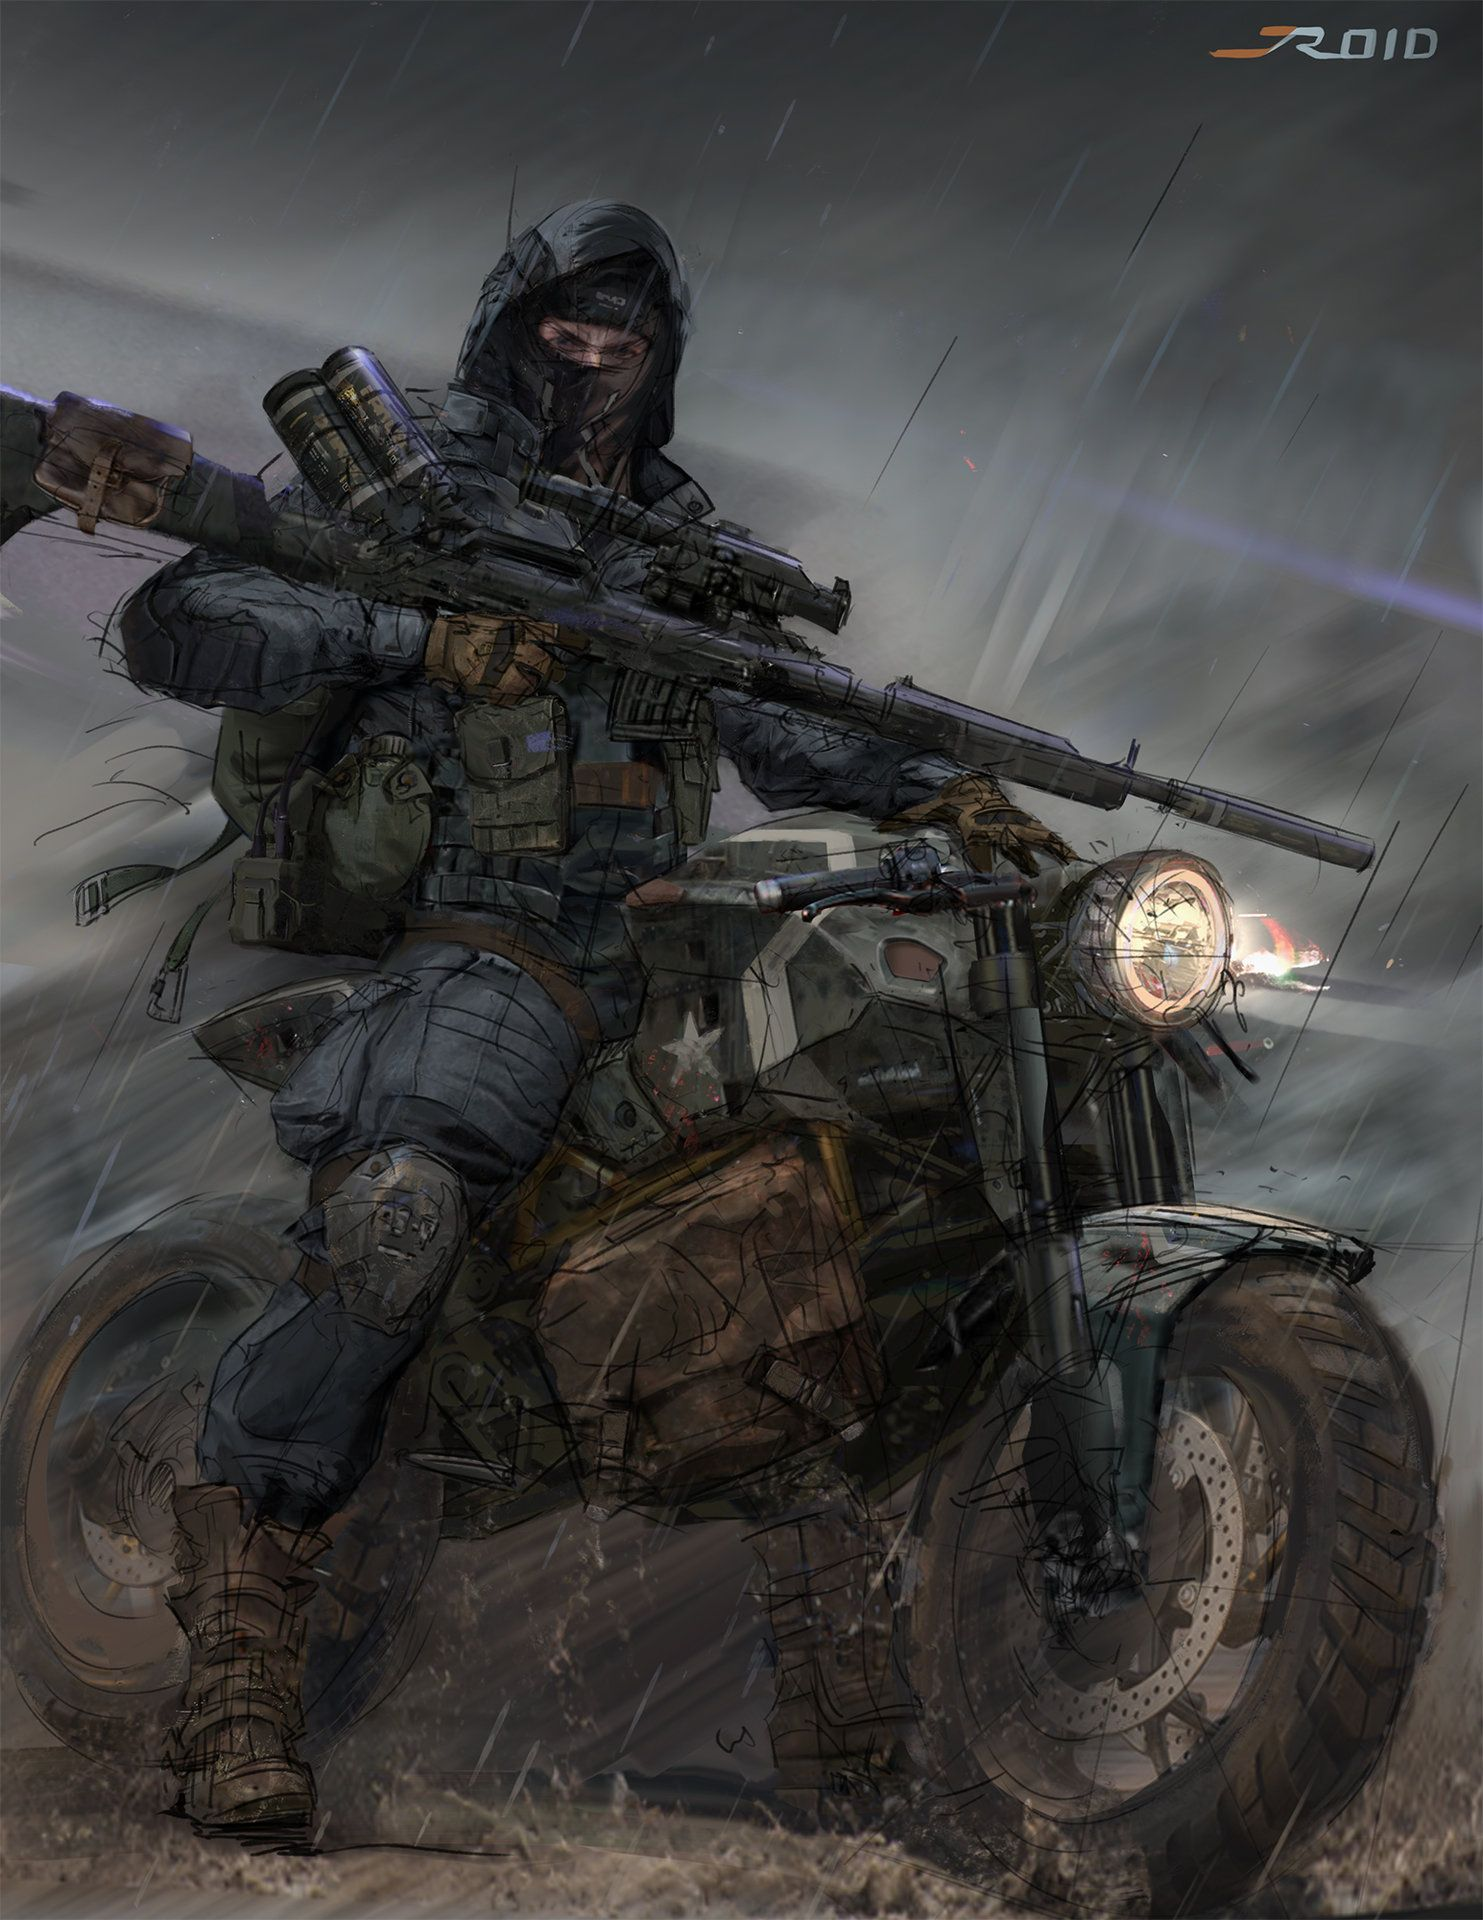 Sniper Art of Victory on Steam